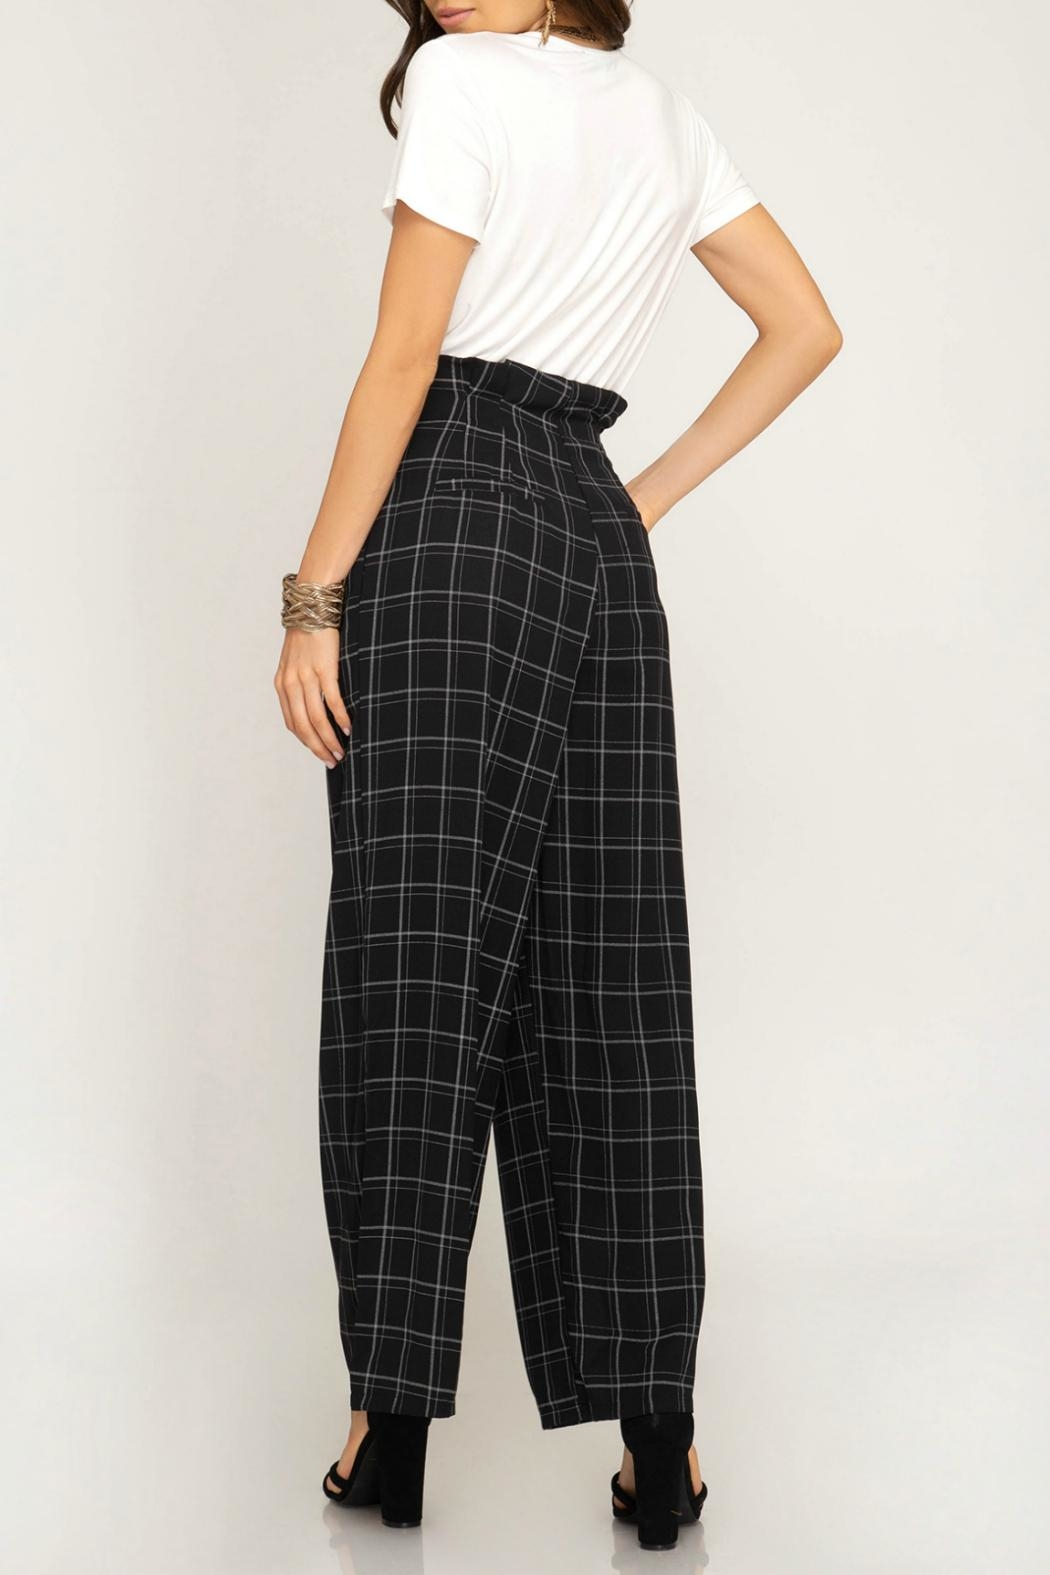 She + Sky High-Waisted Grid Pant - Front Full Image